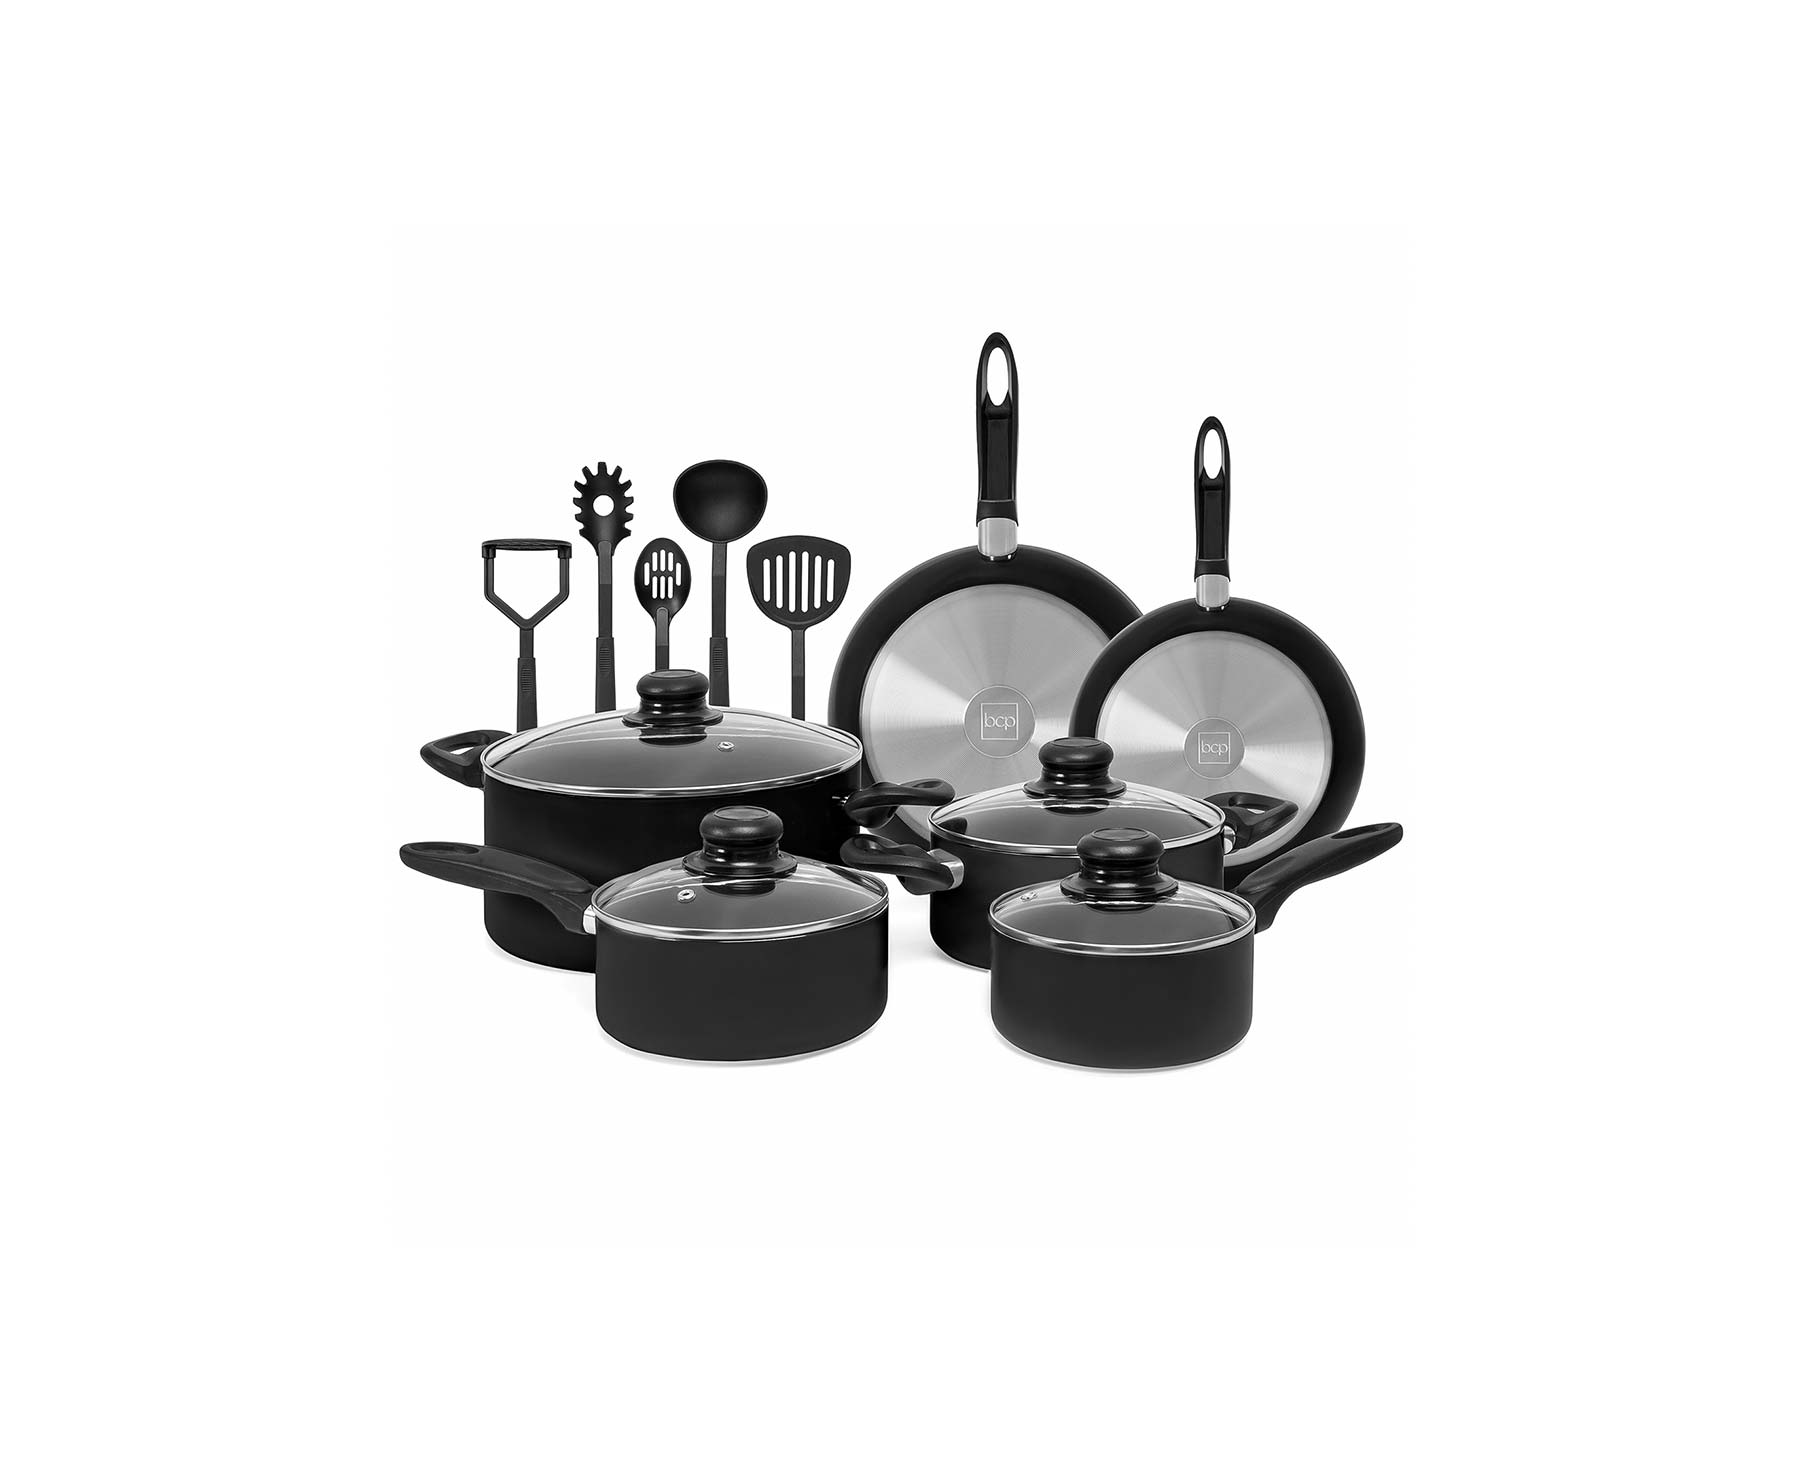 Gifts for Couples: 15-Piece Nonstick Aluminum Stovetop Oven Cookware Set